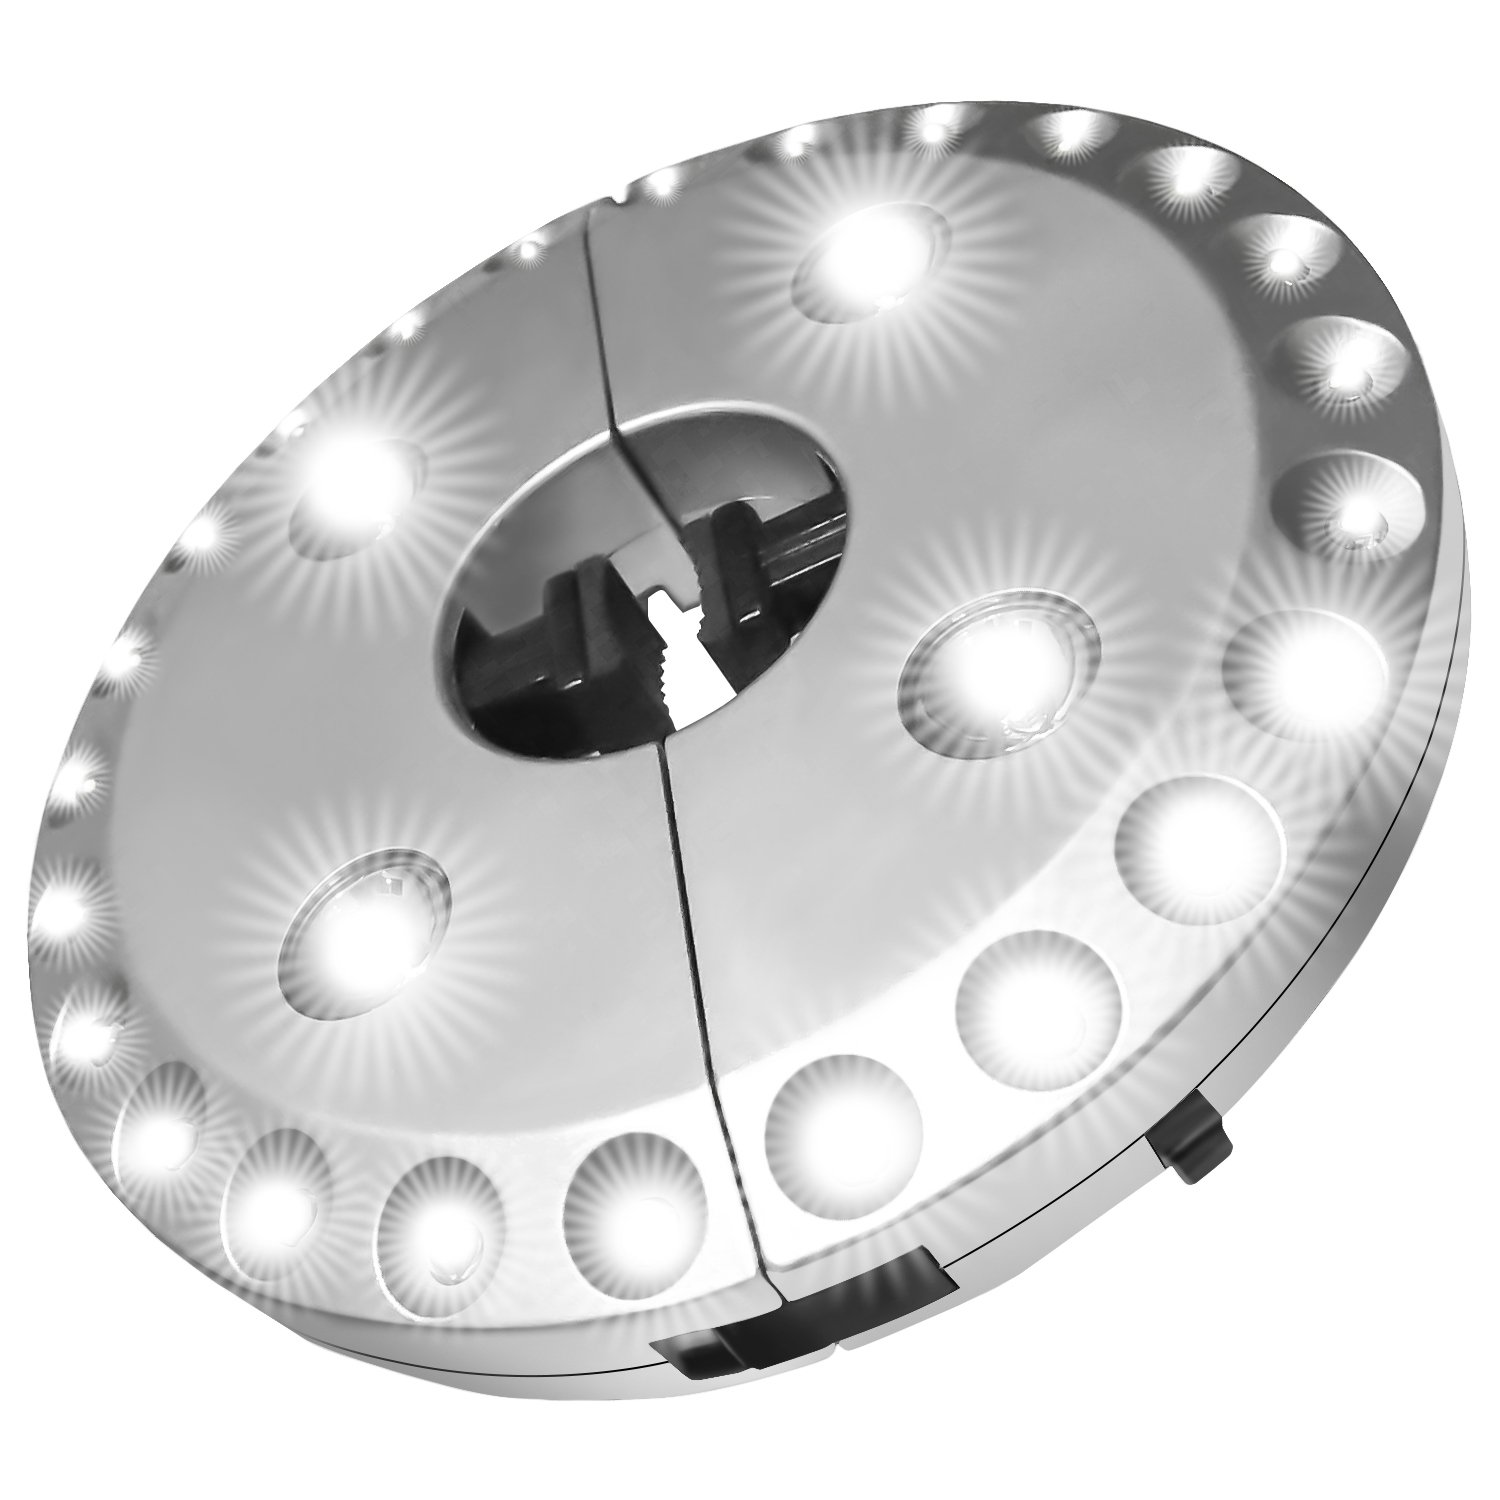 Patio Umbrella Light, PEYOU 3 Brightness Modes 28 LED Lights Wireless Umbrella Light, 4 x AA Battery Operated, Umbrella Light for Patio Umbrellas,Outdoor Use, or Camping Tents